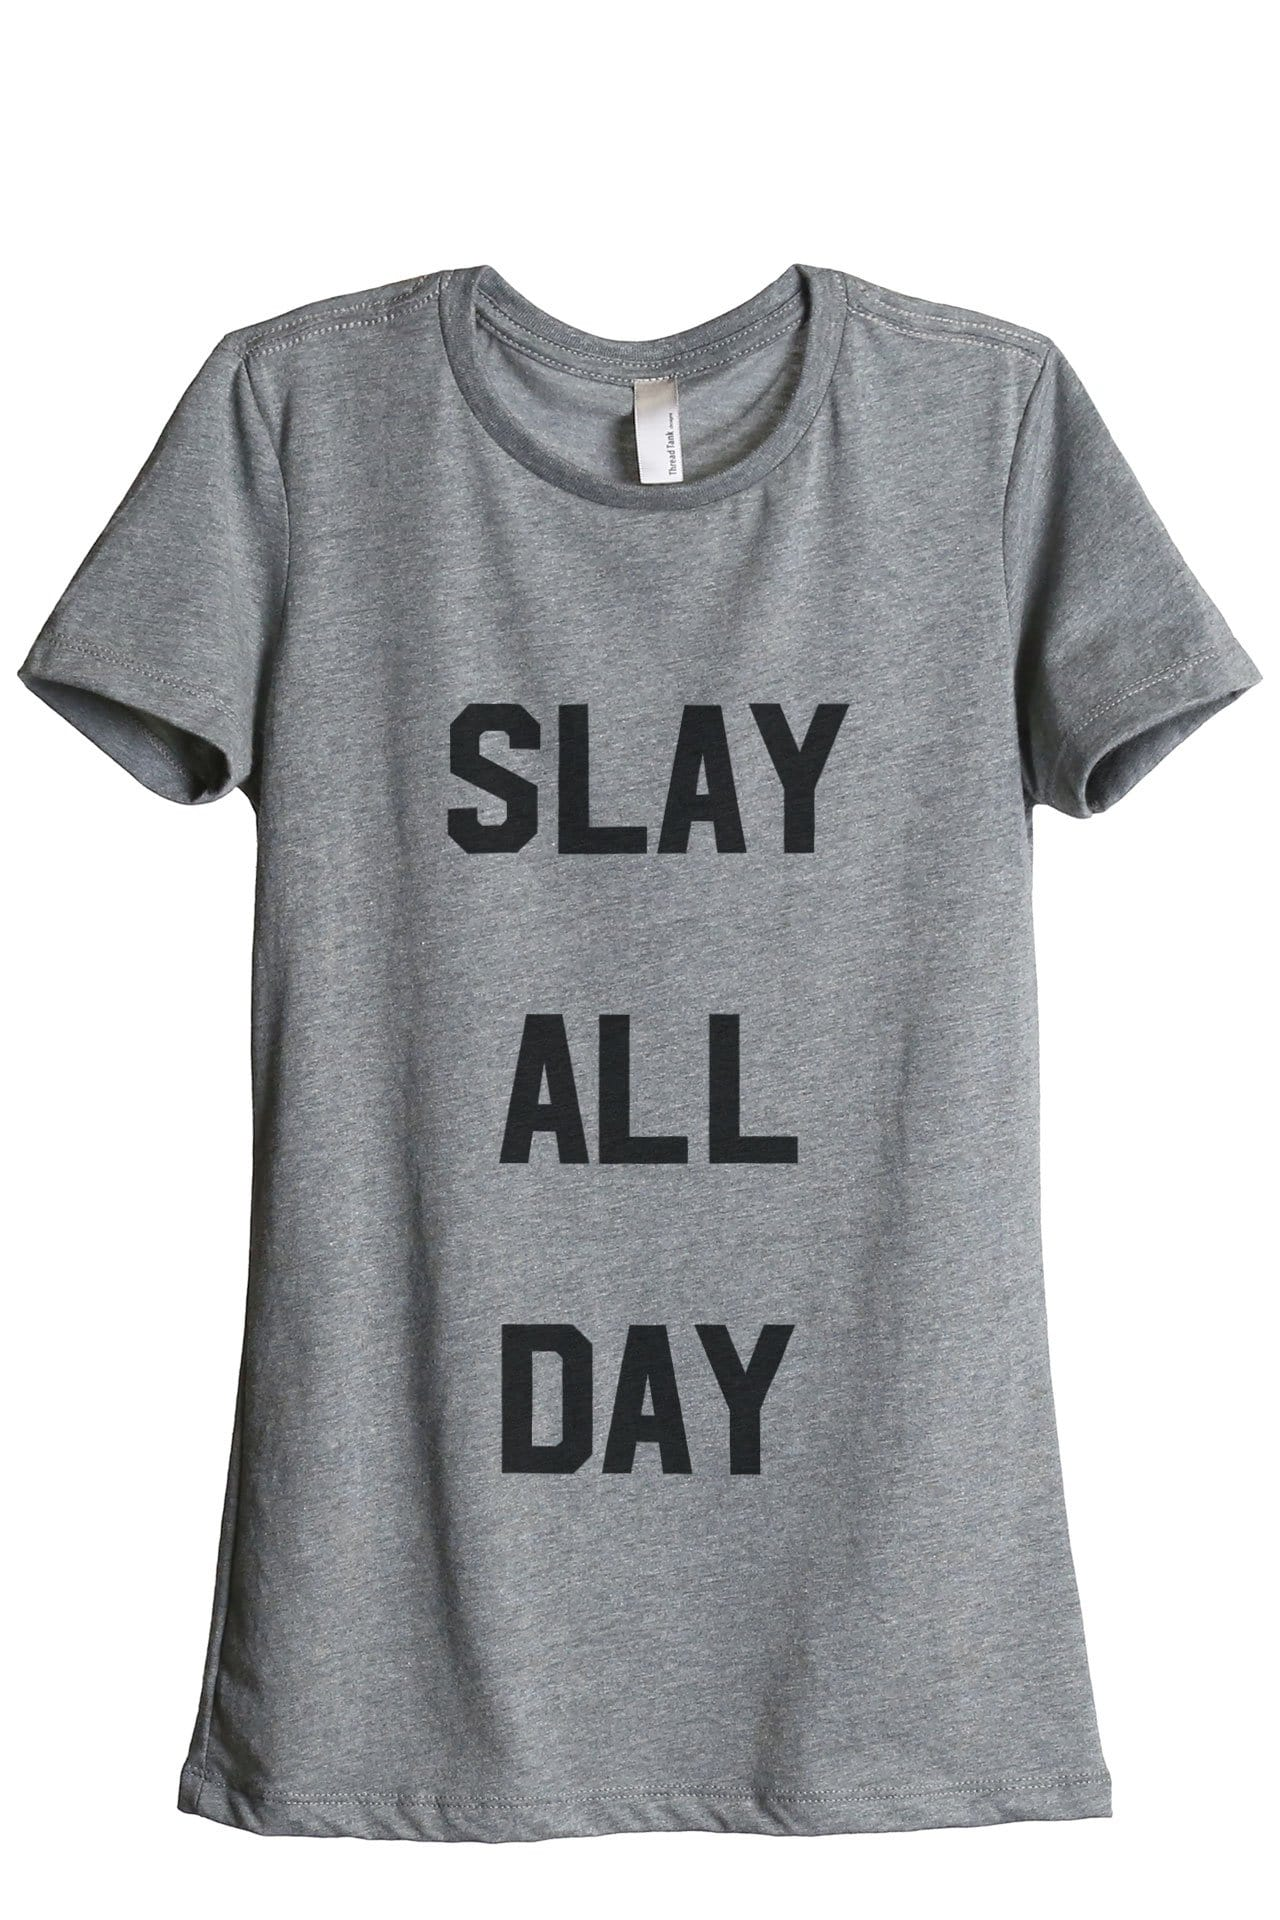 Slay All Day Women Heather Grey Relaxed Crew T-Shirt Tee Top